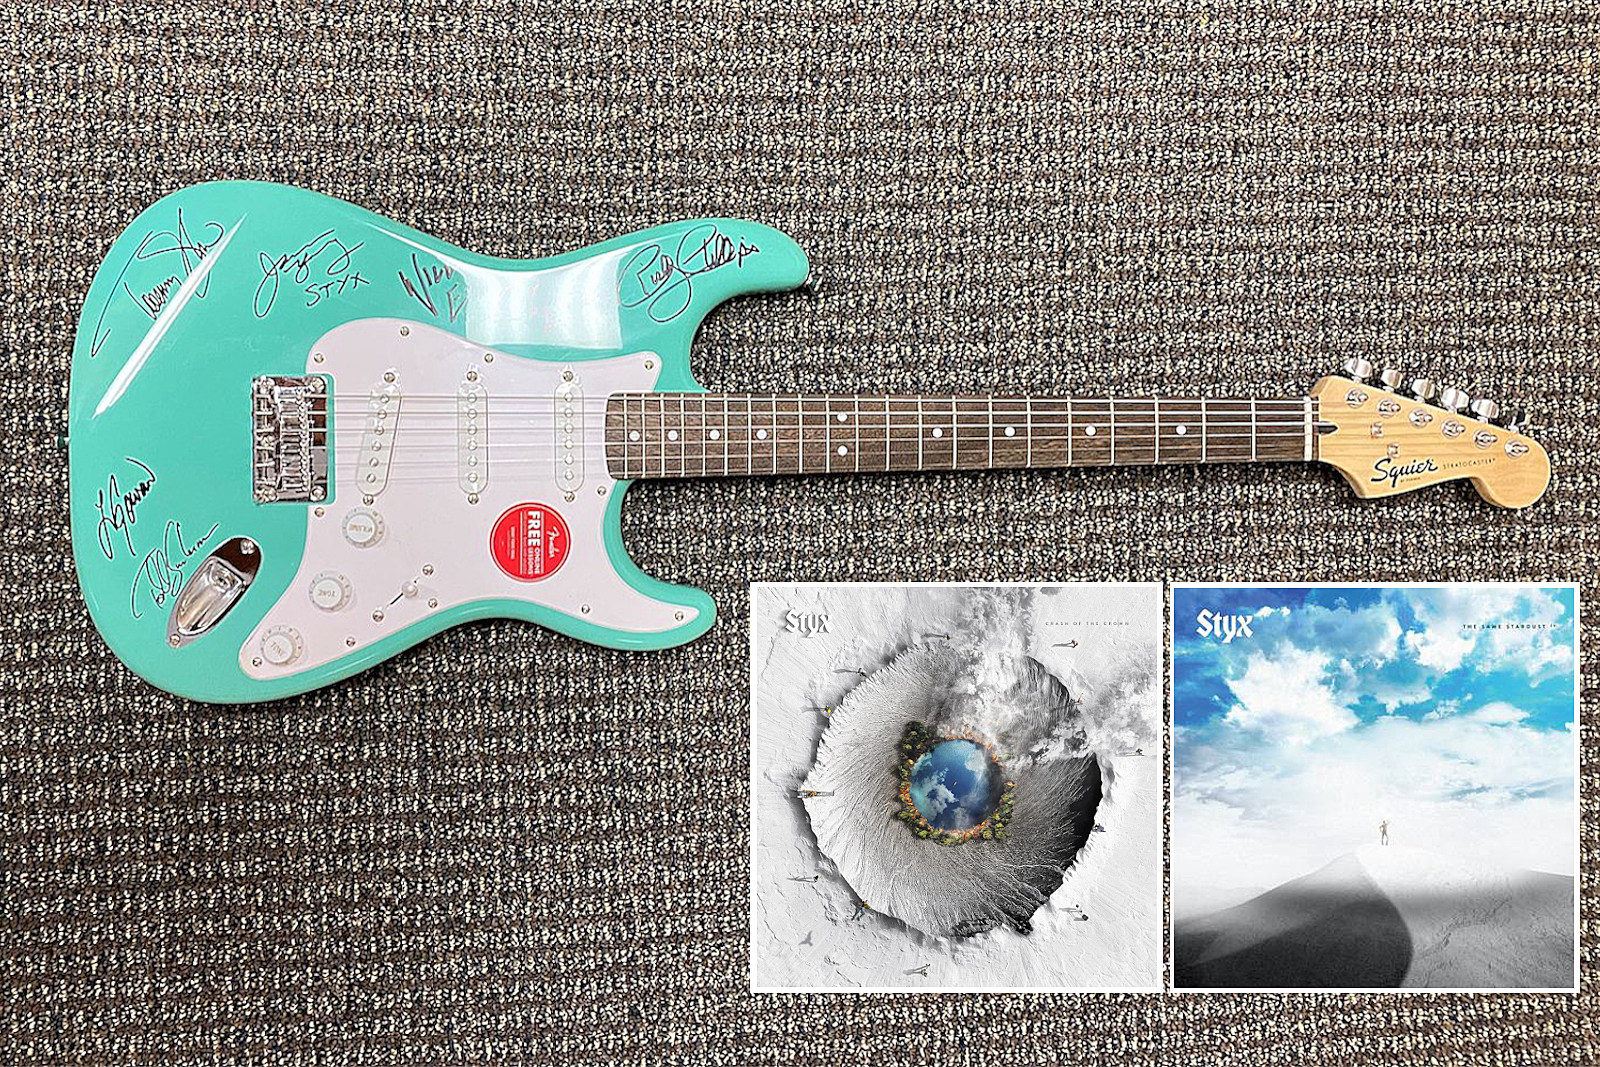 Win a Styx Signed Guitar and Prize Pack